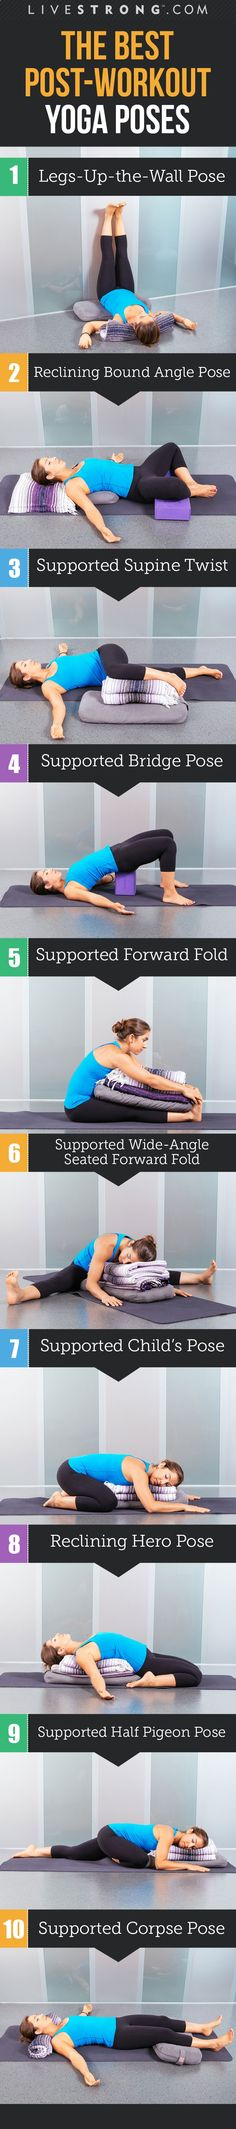 10 Yoga Poses to Help You Recover from Your Workouthttp://www.livestrong.com/slideshow/1011474-10-yoga-poses-recover-workout/